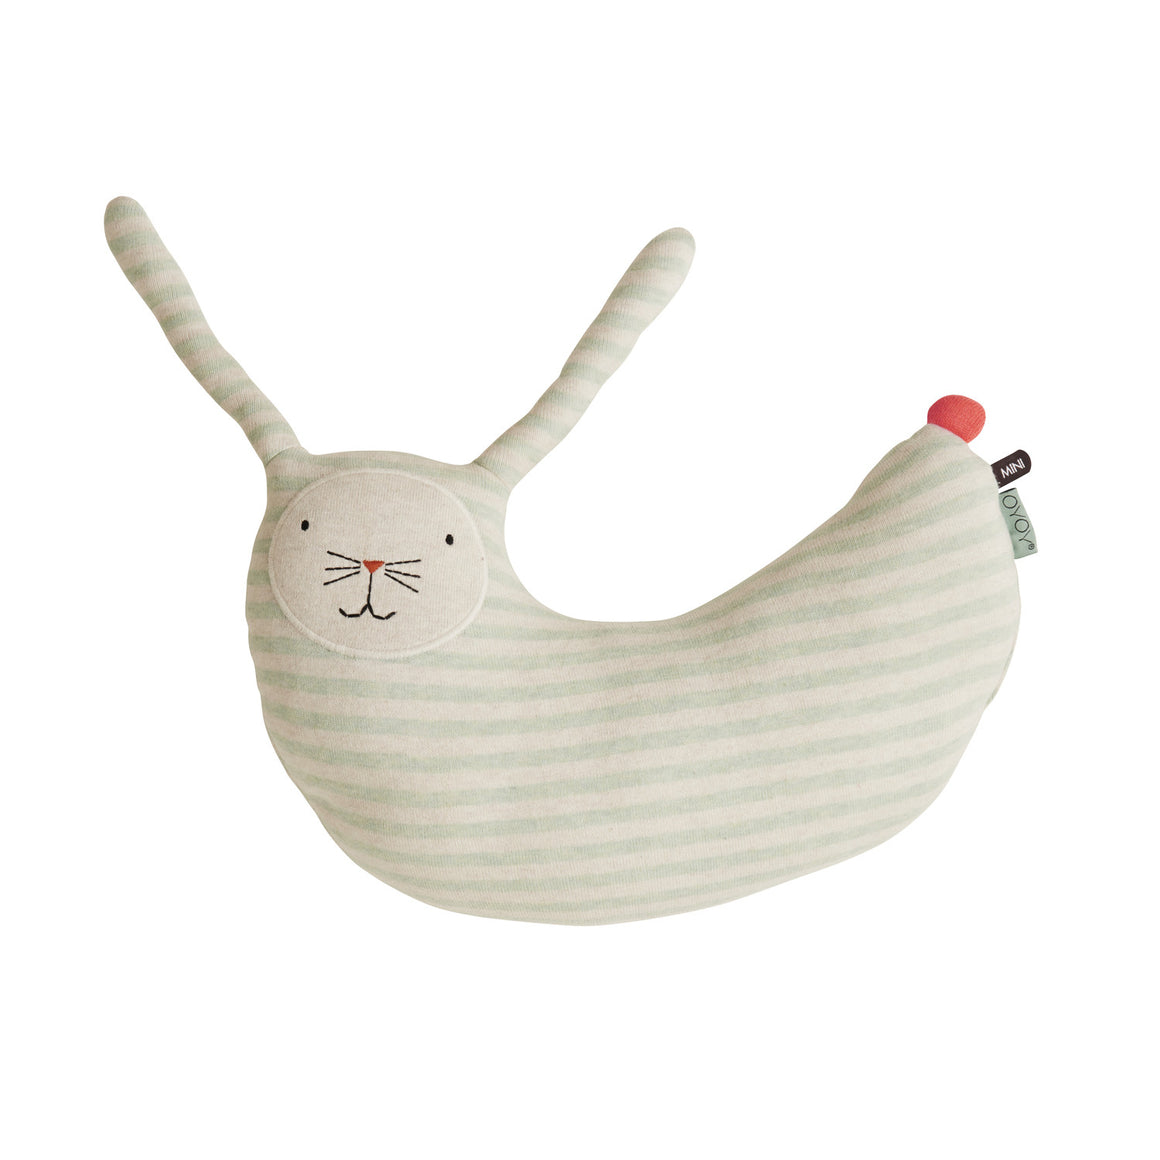 Rabbit Peter Cushion